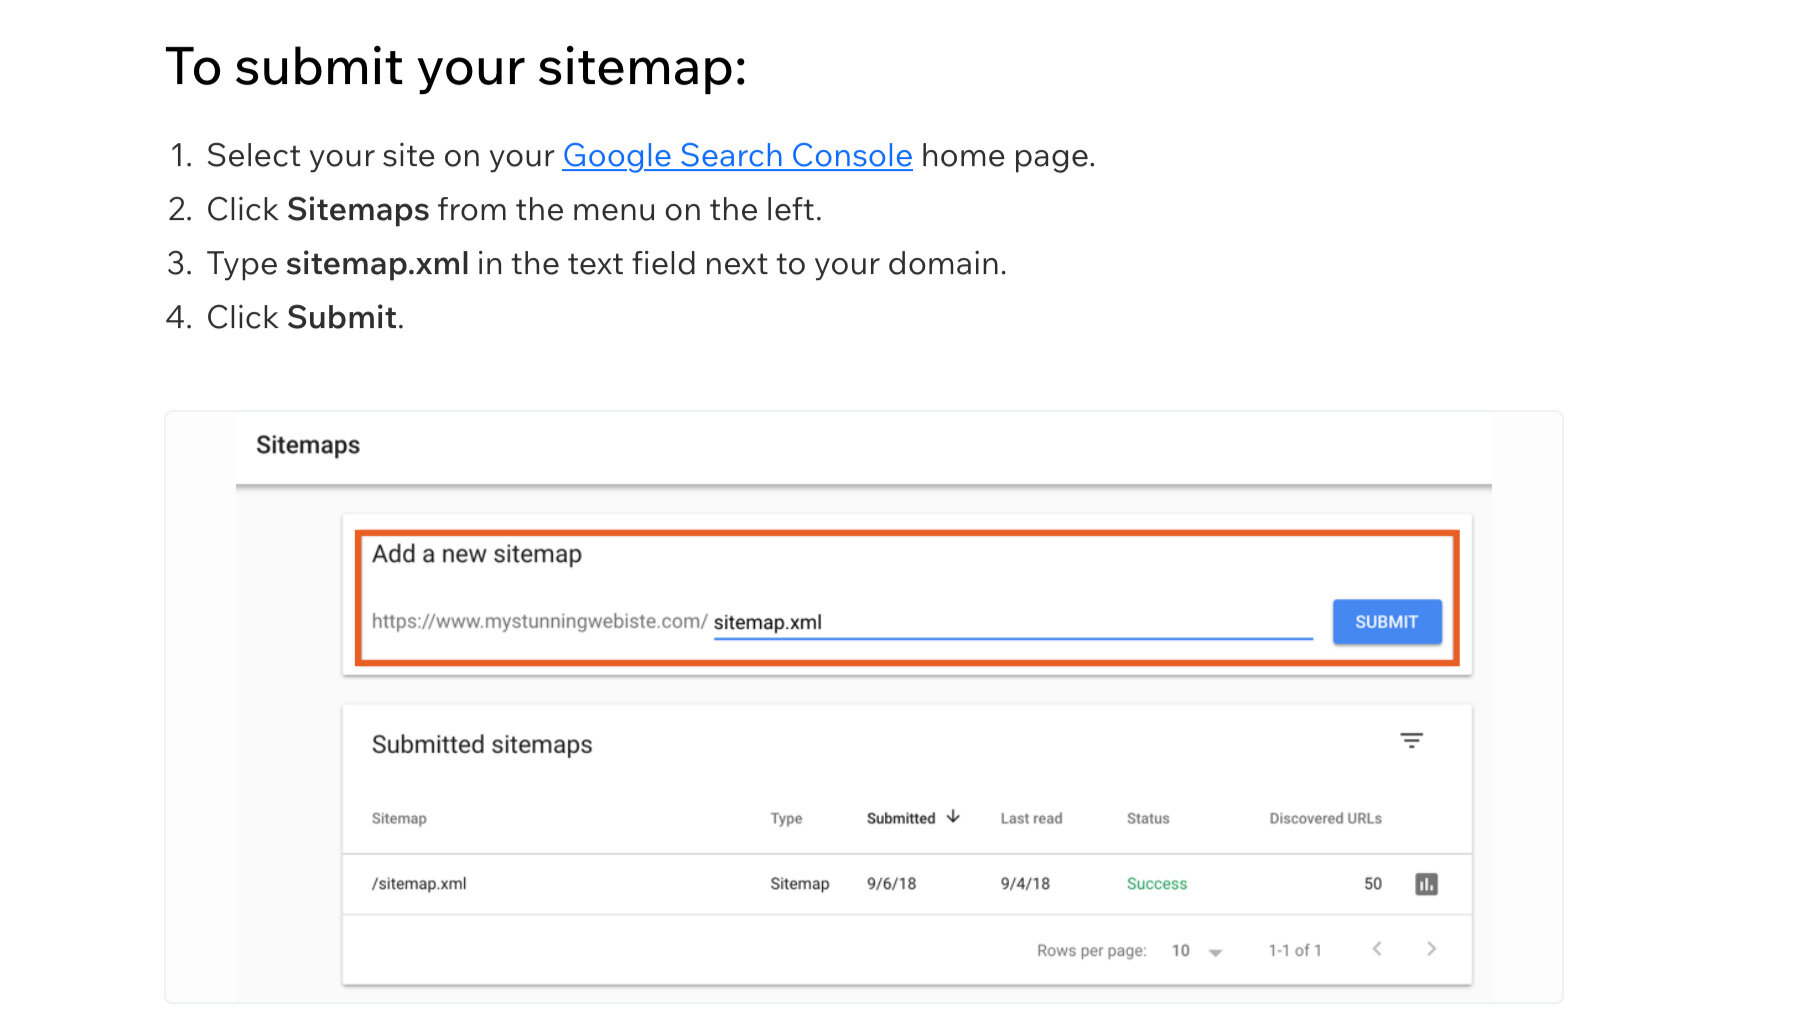 guide-to-submit-sitemap-to-google-search-console-seo.jpg